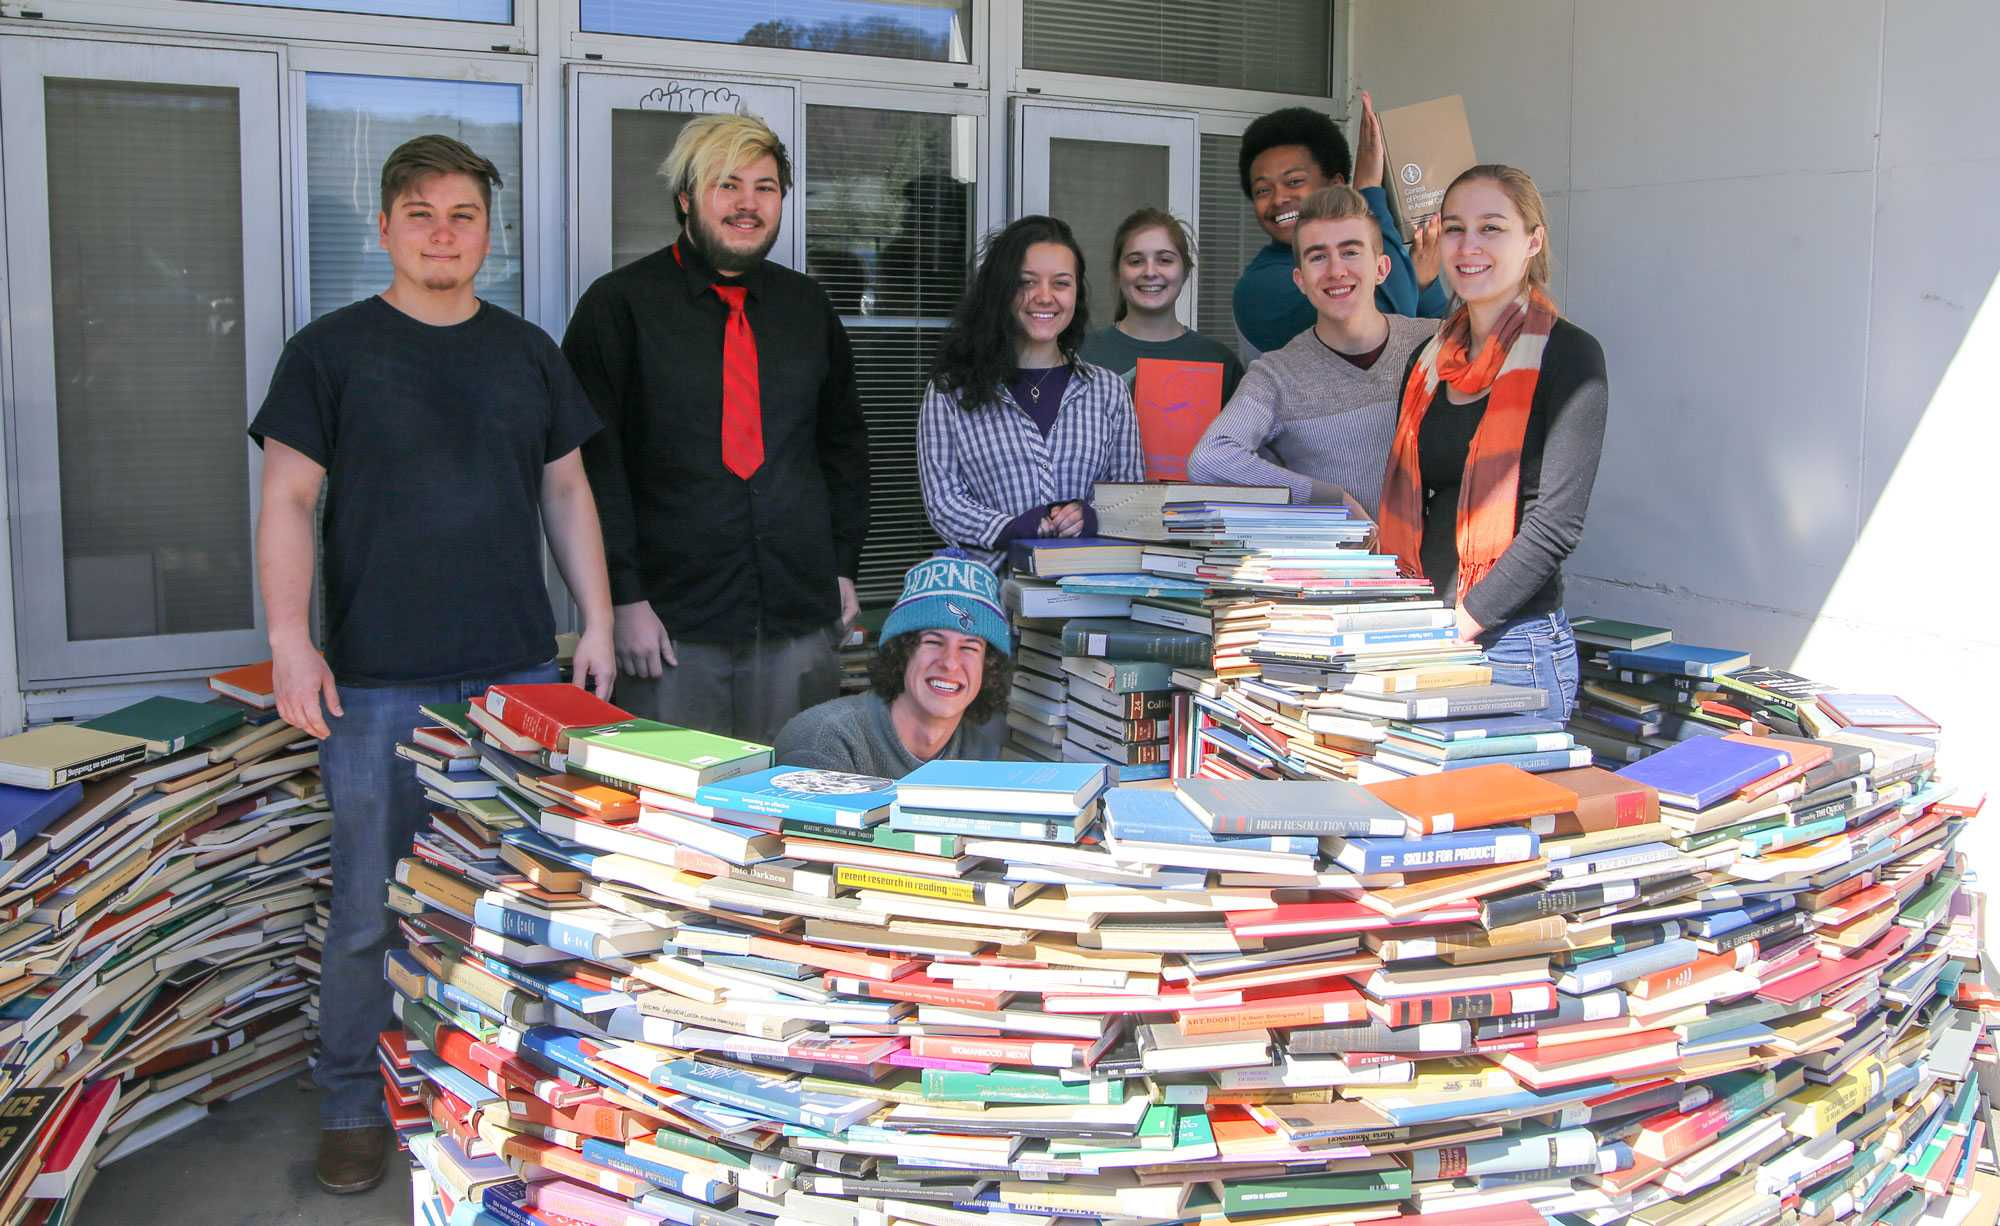 Eco-Reps pose with an igloo they made out of used books last year.